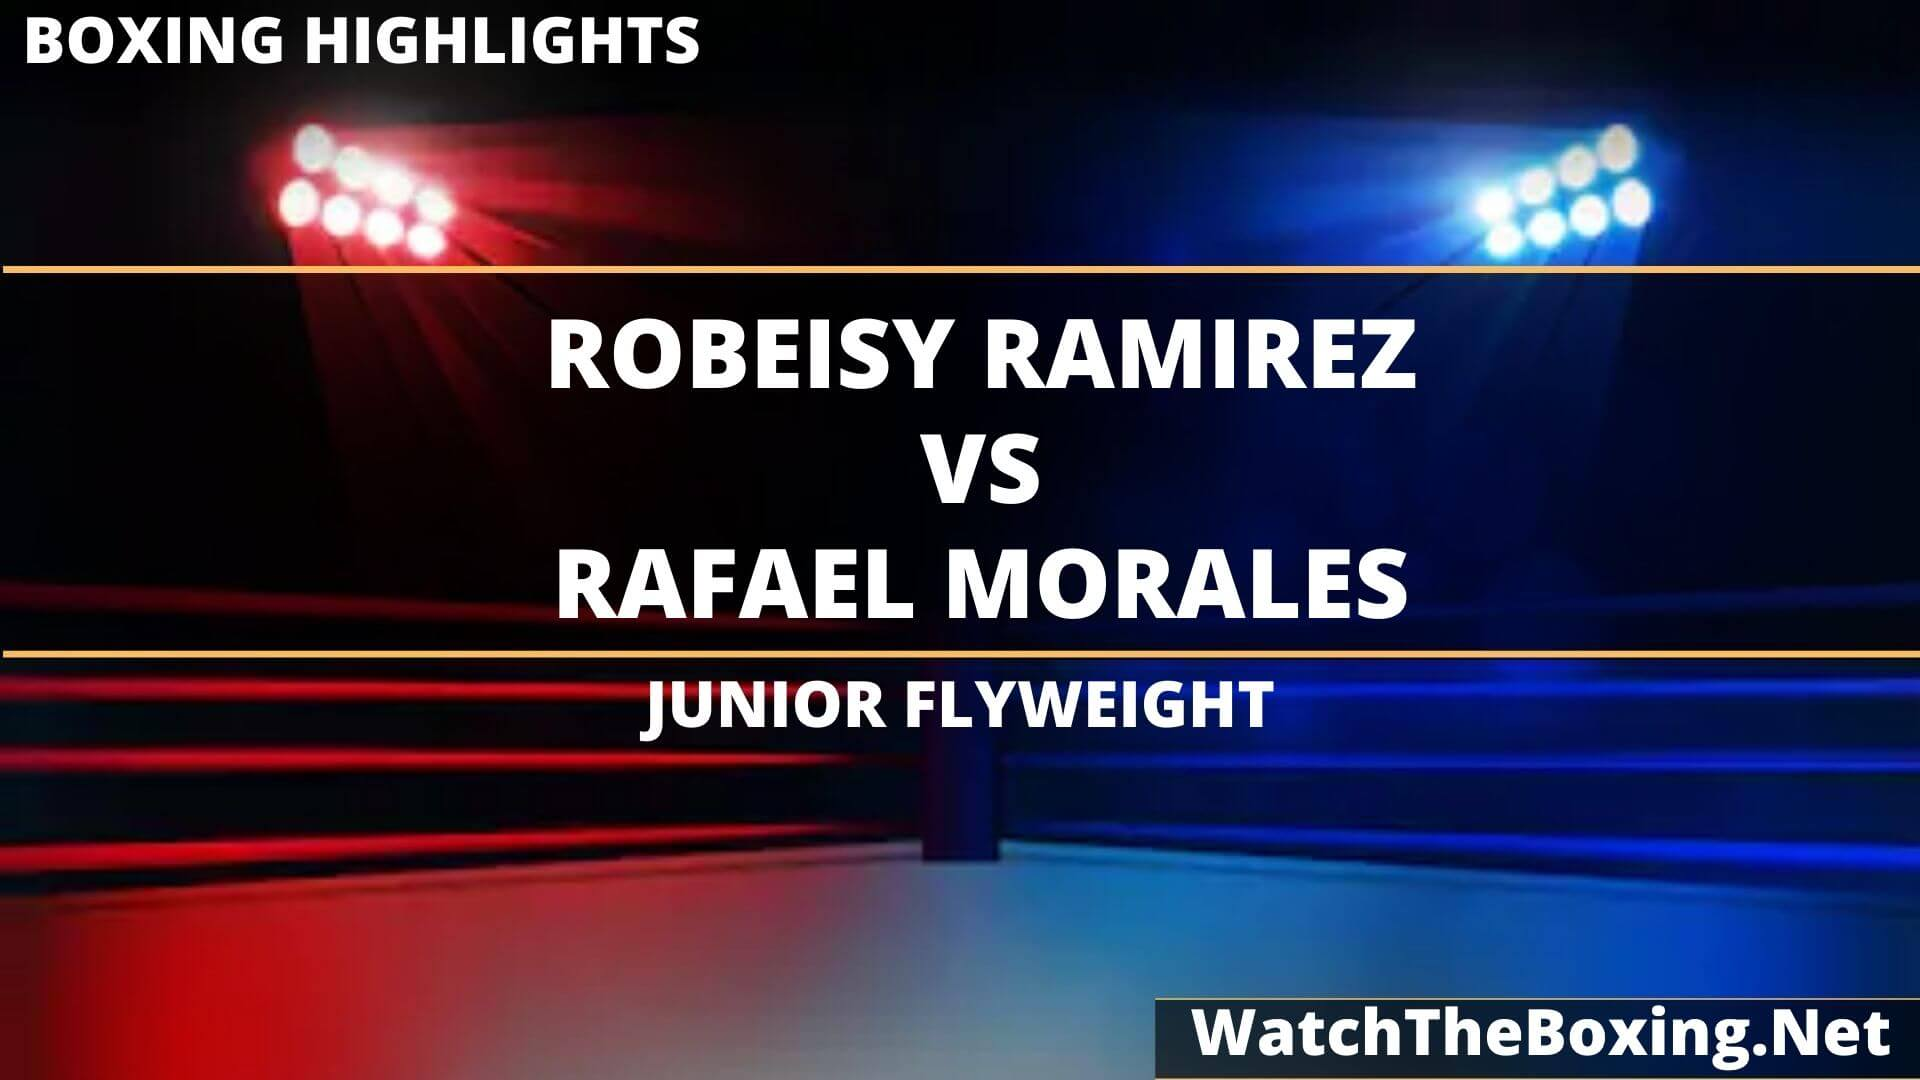 Robeisy Ramirez Vs Rafael Morales Highlights 2020